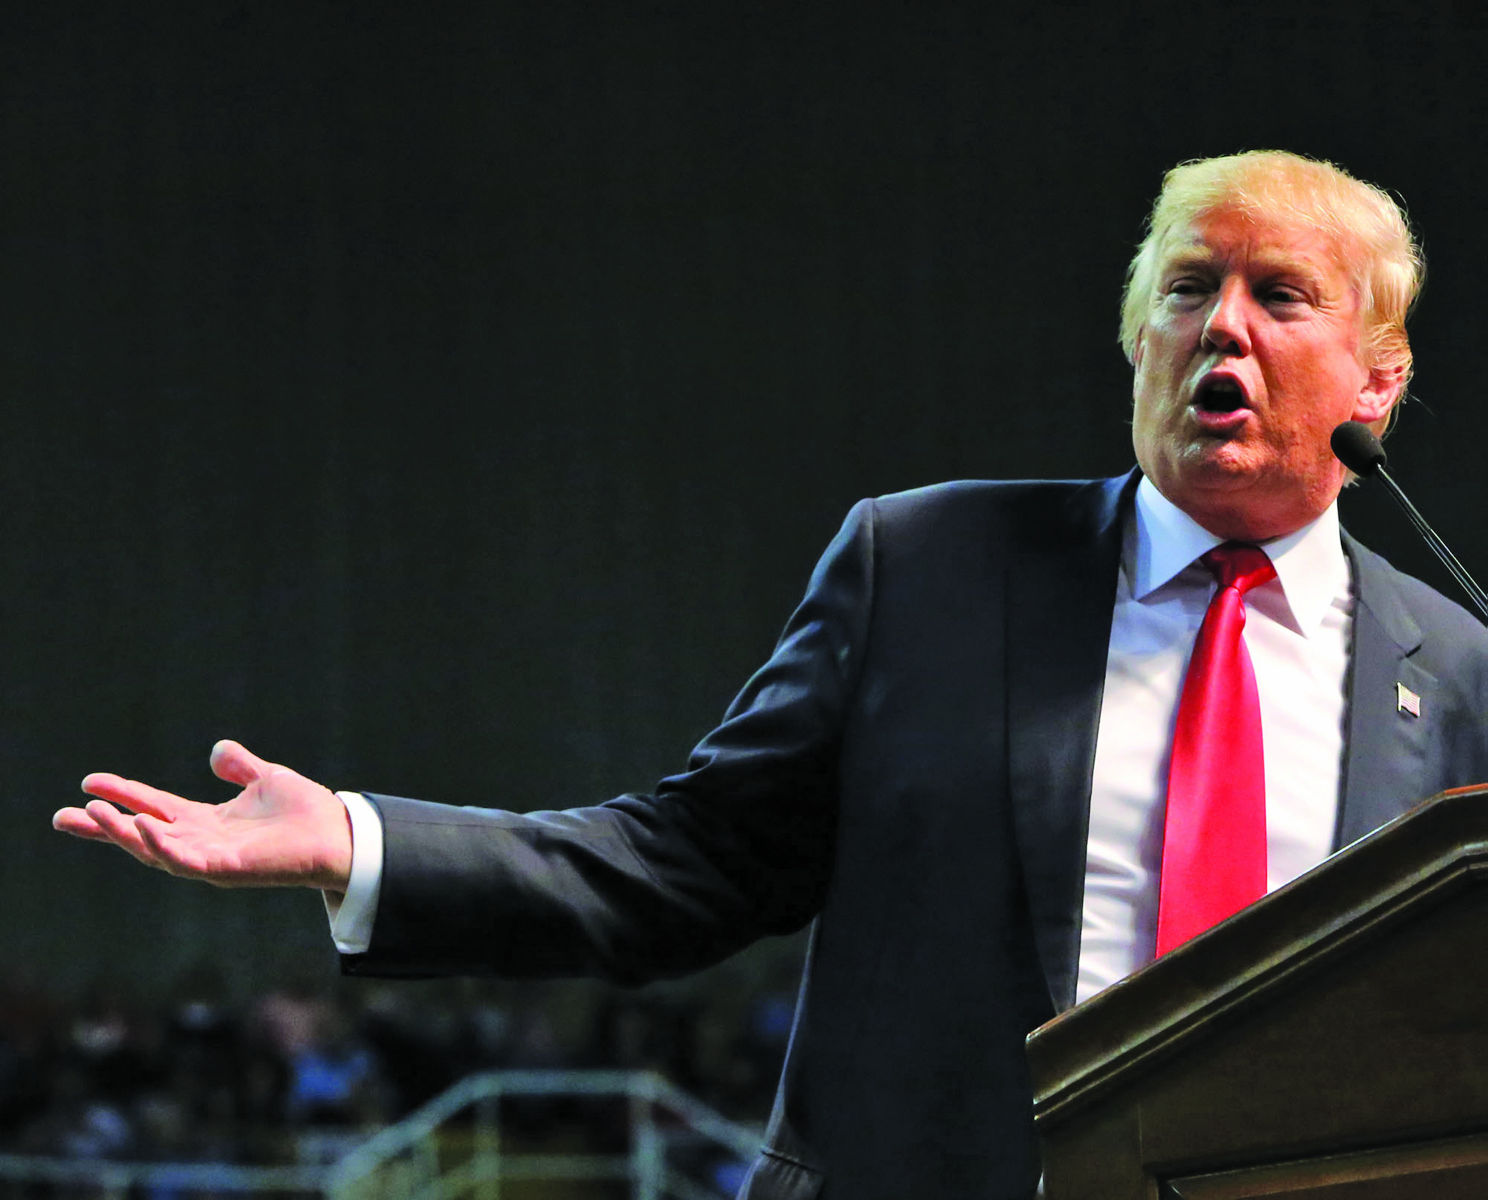 Republican presidential candidate Donald Trump speaks during a rally at the Mississippi Coast Coliseum in Biloxi, Miss., on Saturday, Jan. 2, 2016. (John Fitzhugh/Biloxi Sun Herald/TNS)